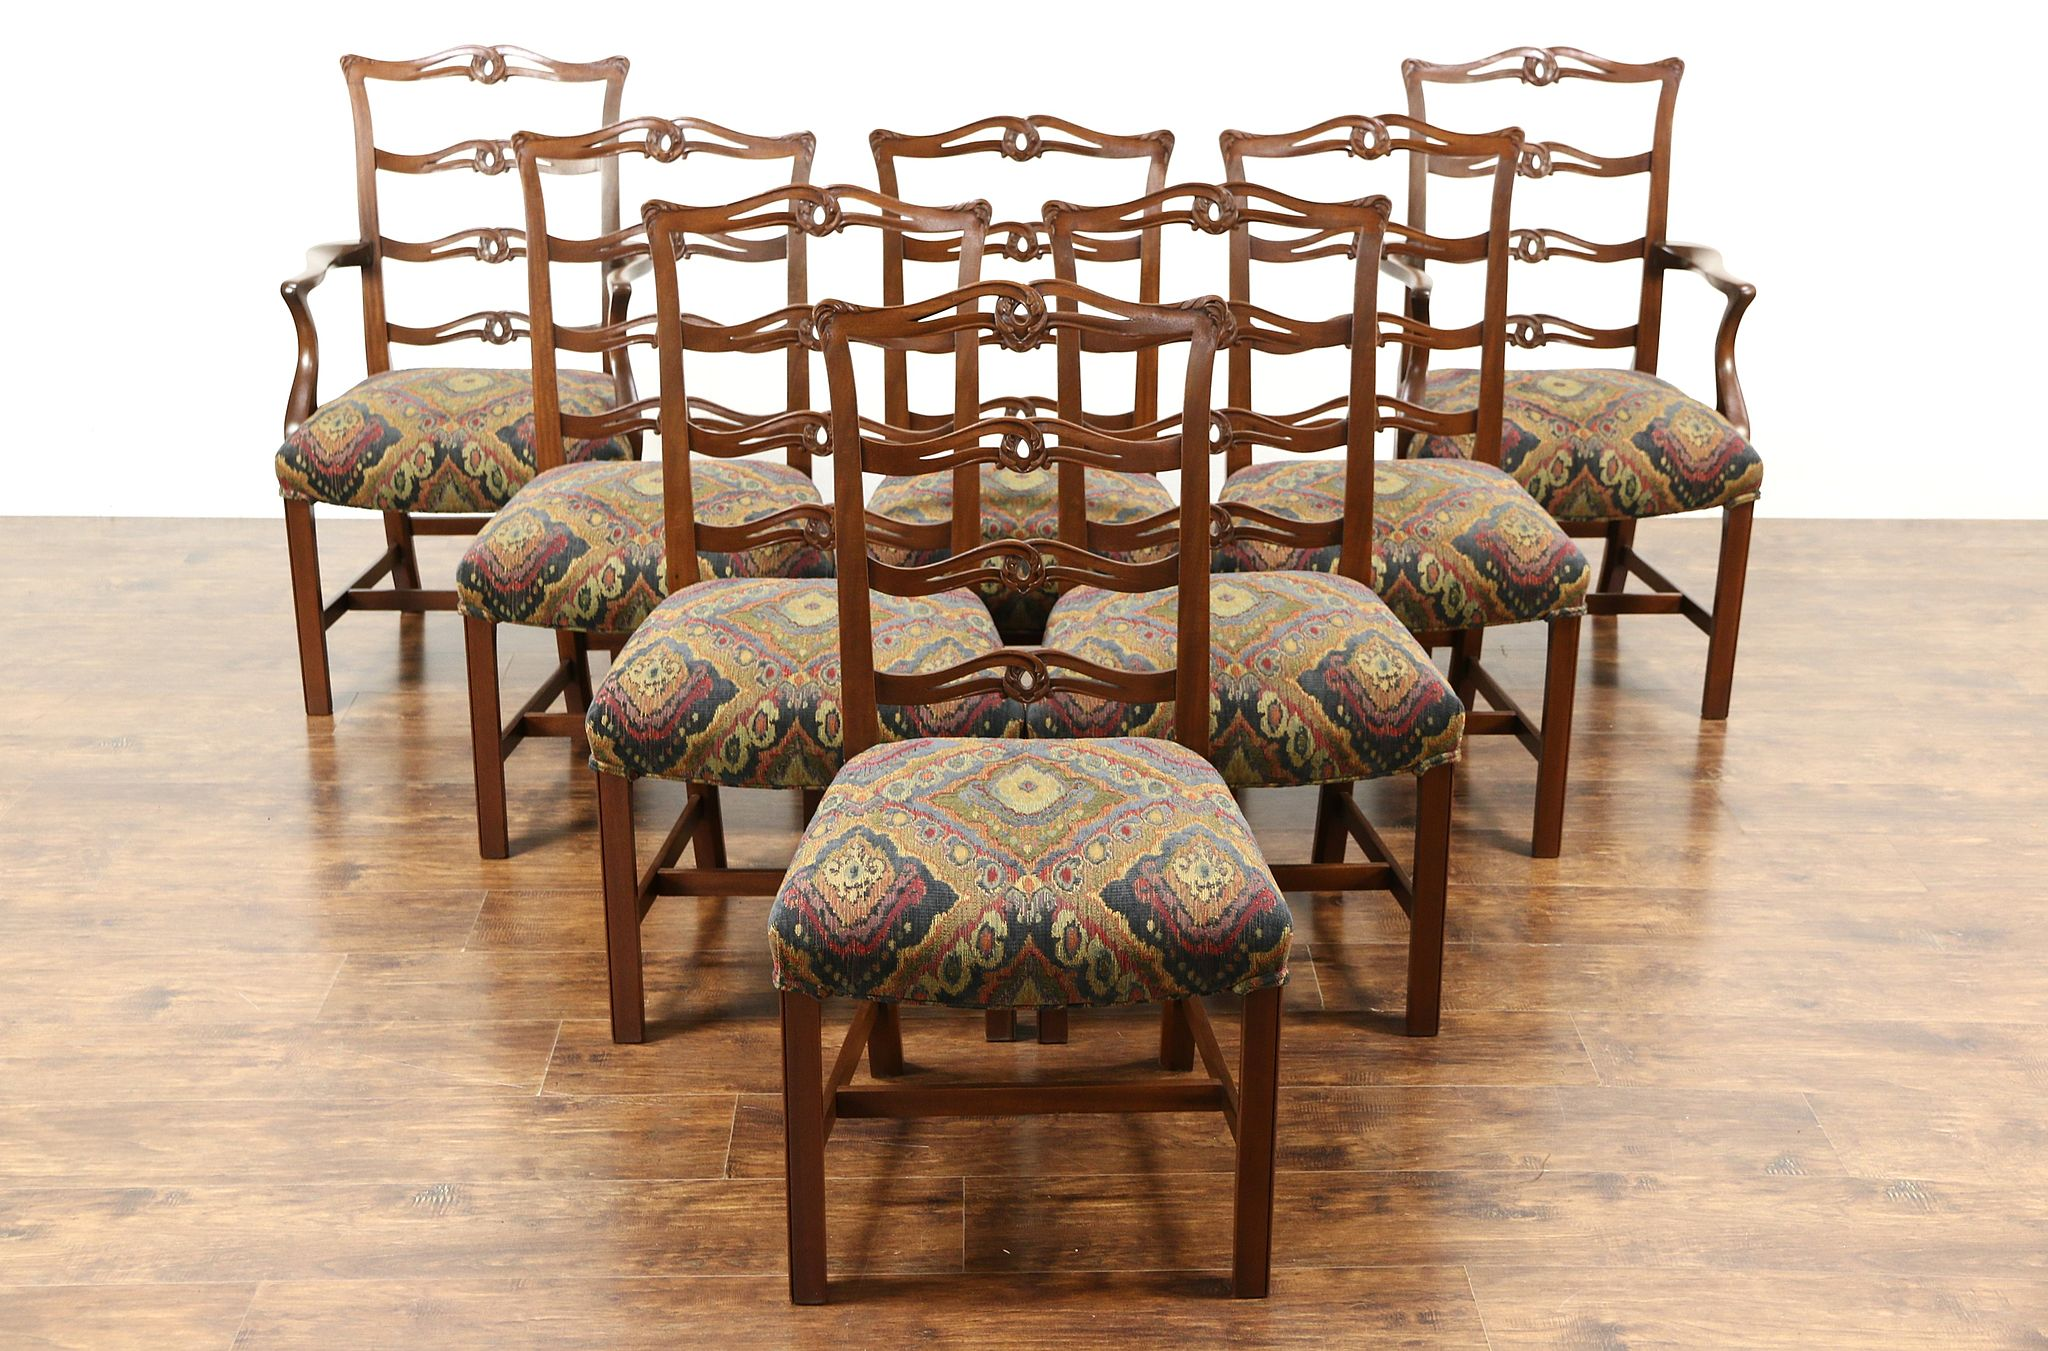 Refurbished Chairs Set Of 8 Traditional Carved Mahogany Vintage Dining Chairs New Upholstery